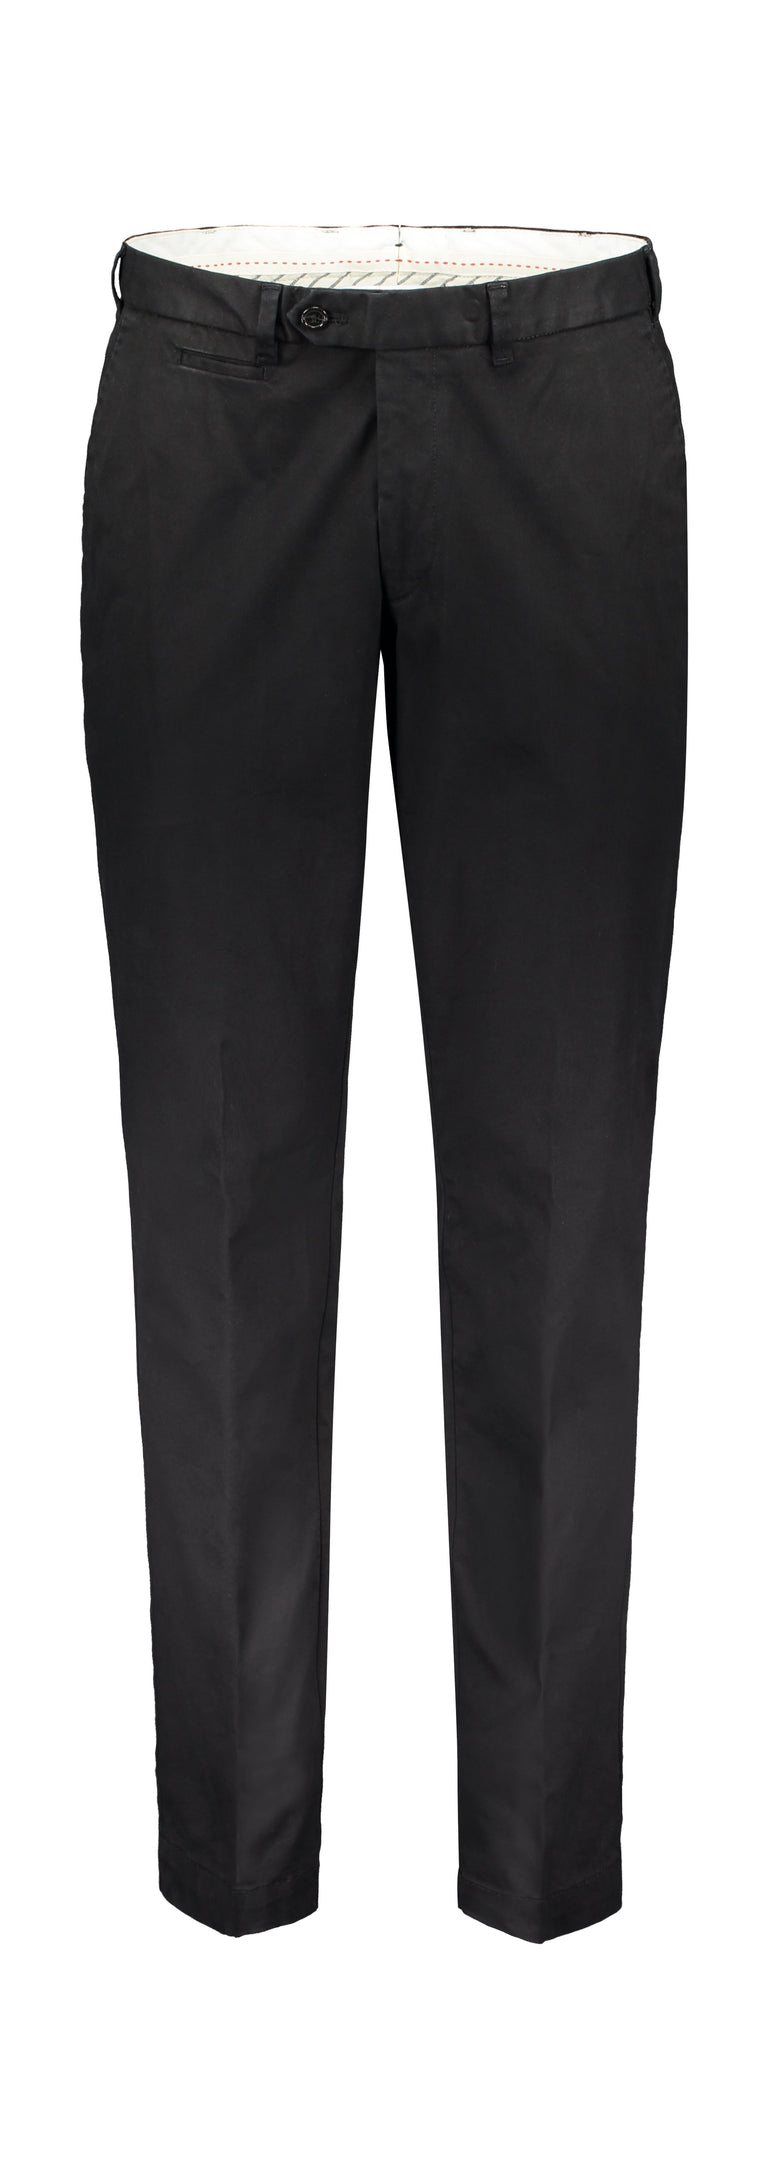 Columbus chinos in black